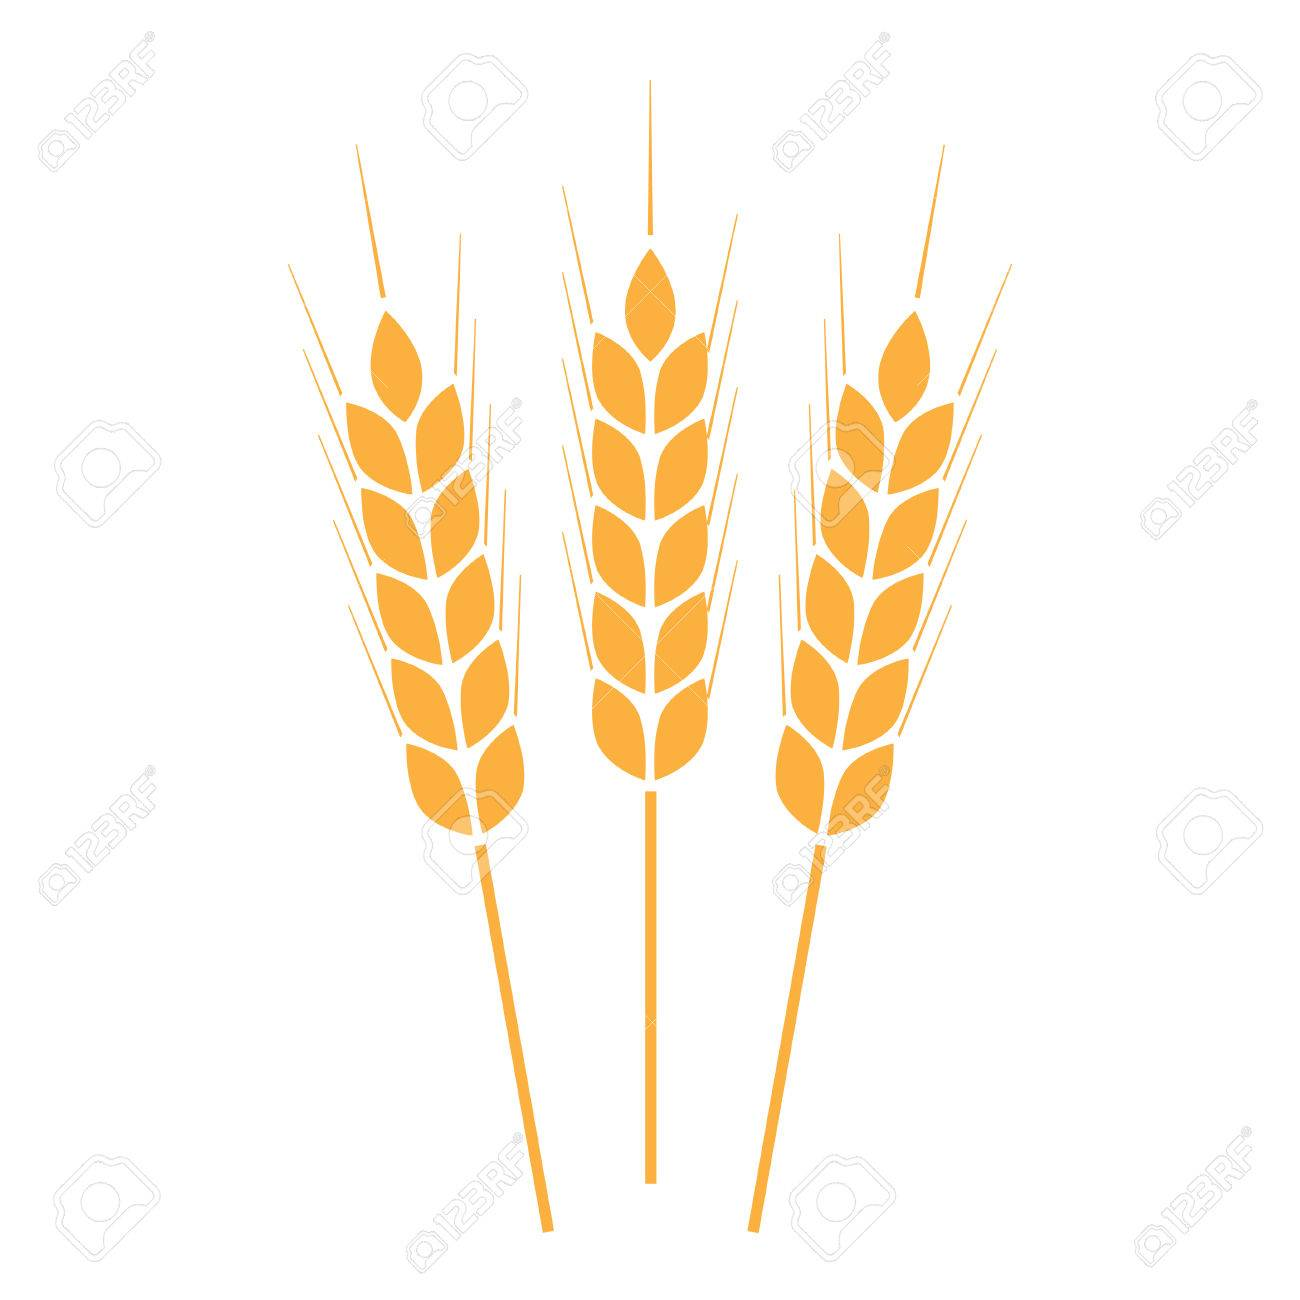 Wheat ears icon or sign crop symbol on white background design crop symbol on white background design element for bread biocorpaavc Gallery